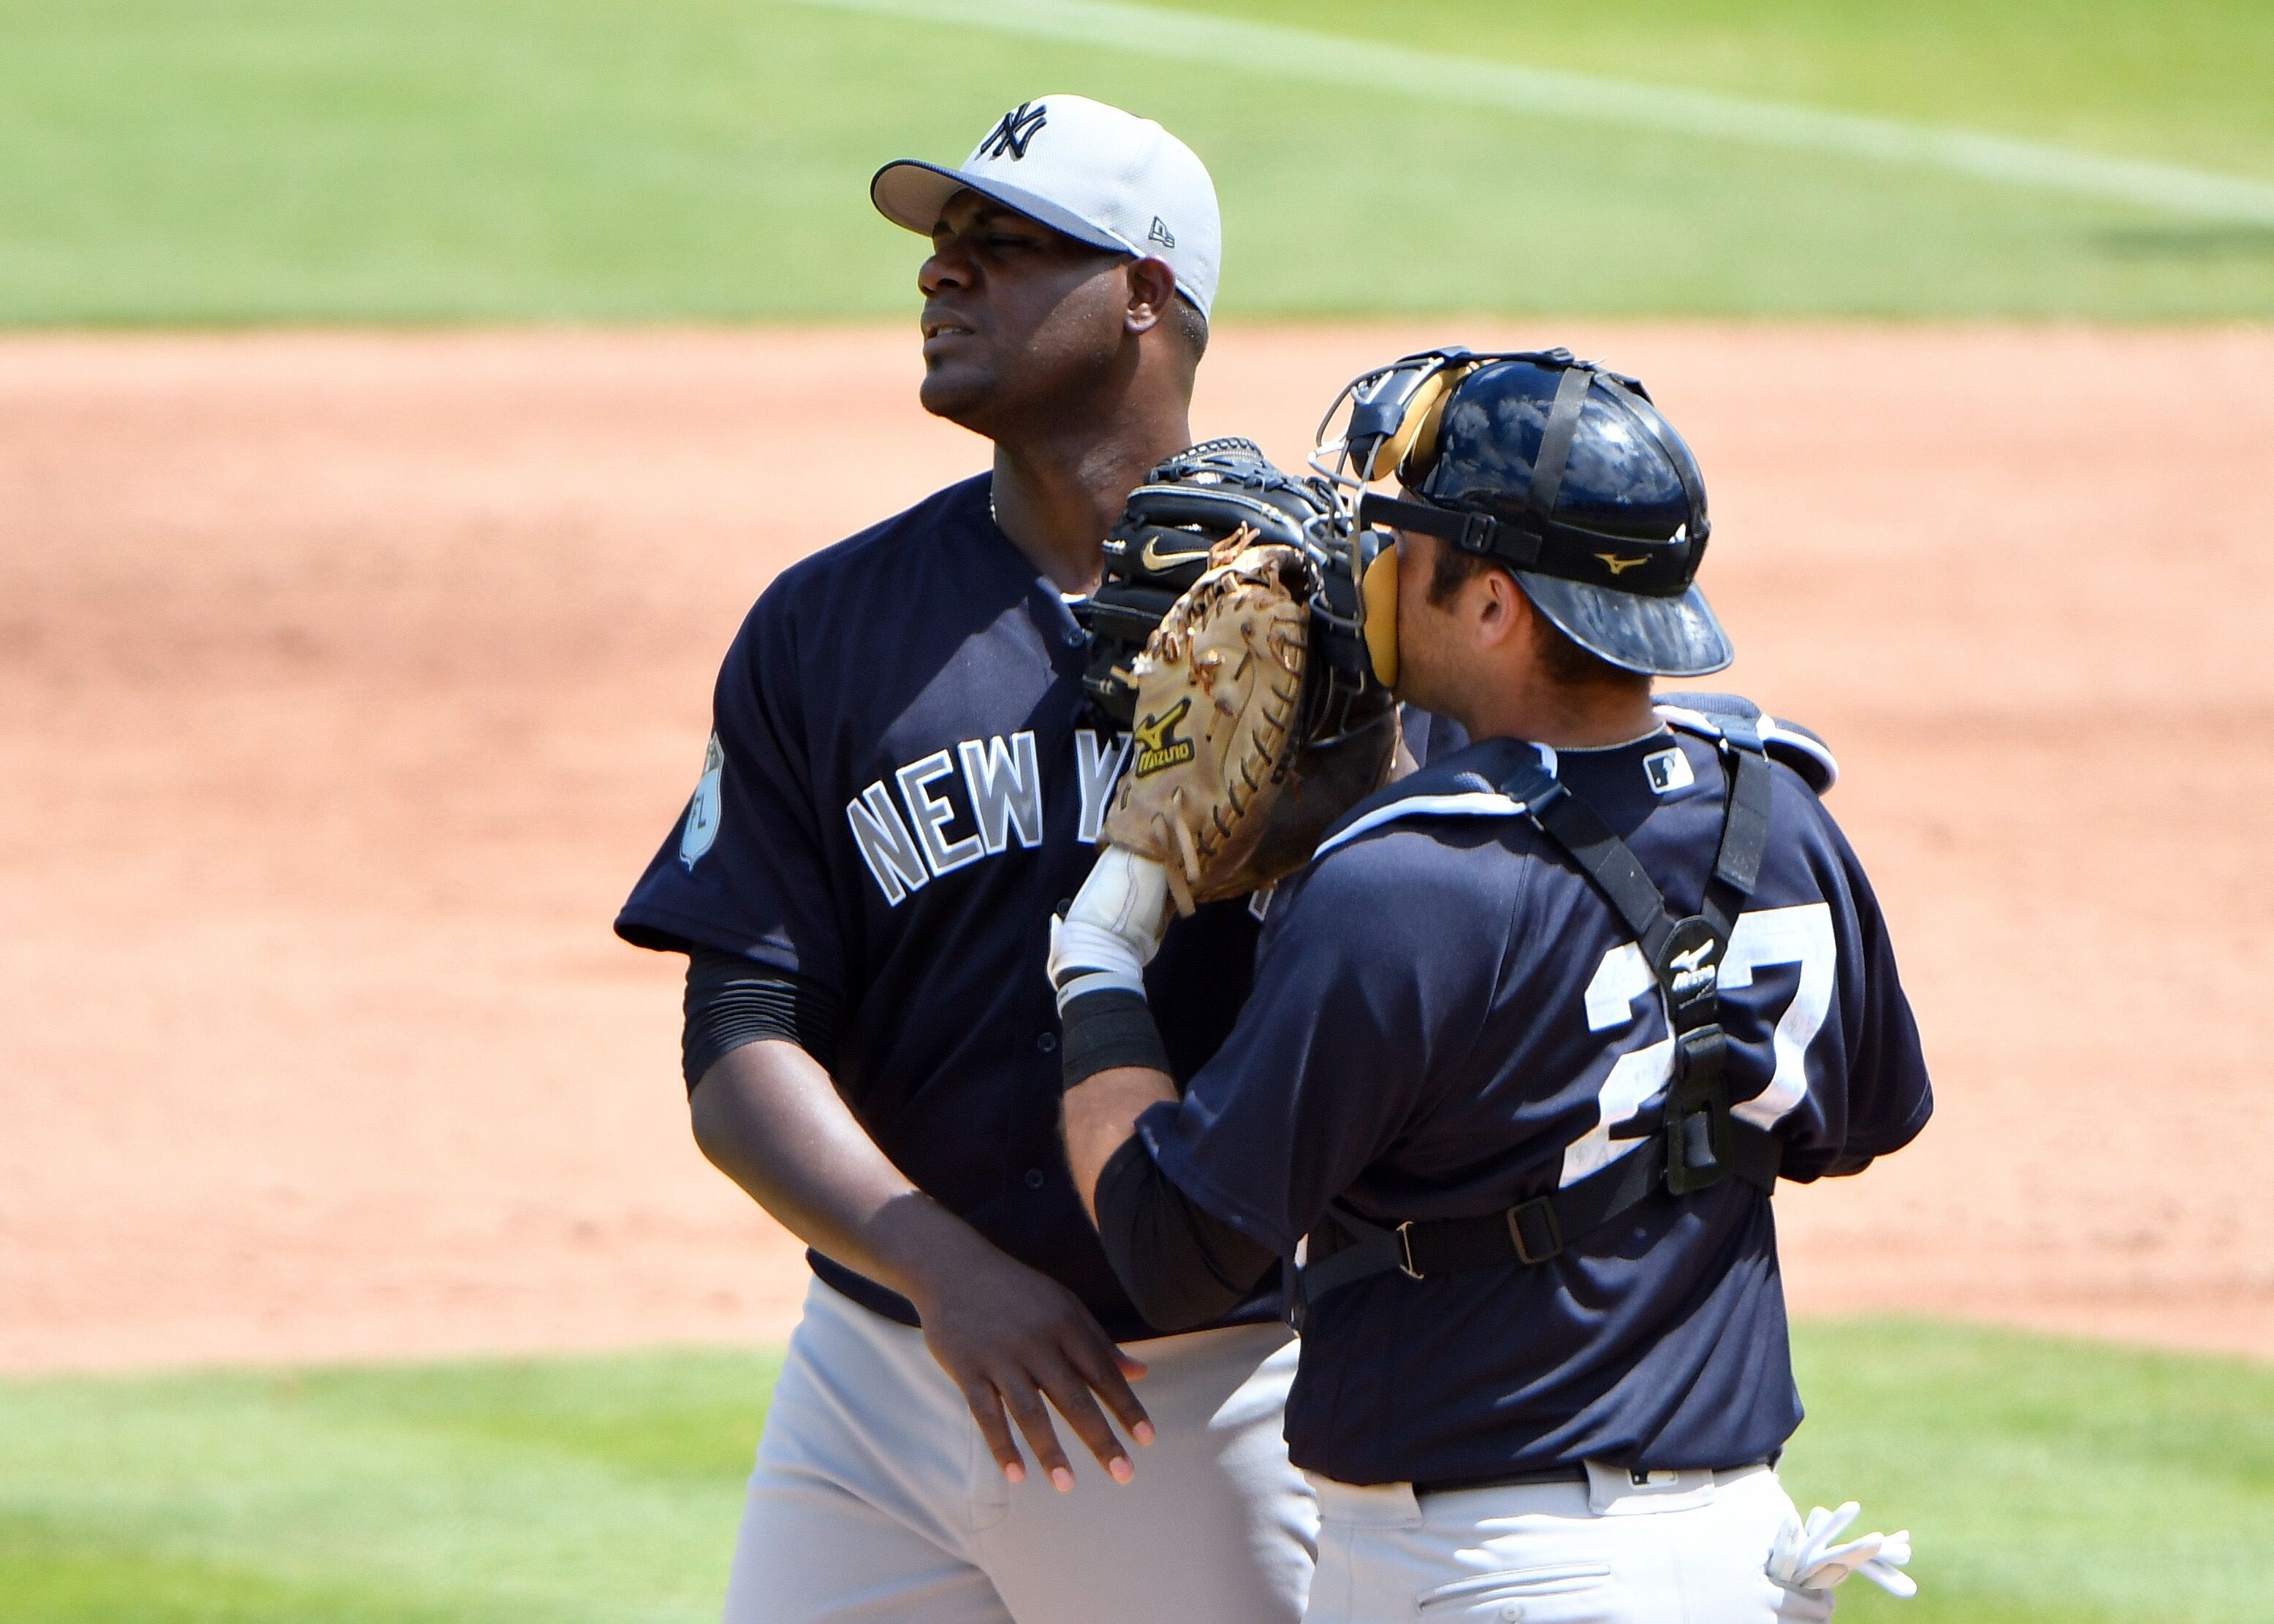 the yankees and pineda a classic case of enabling poor behavior